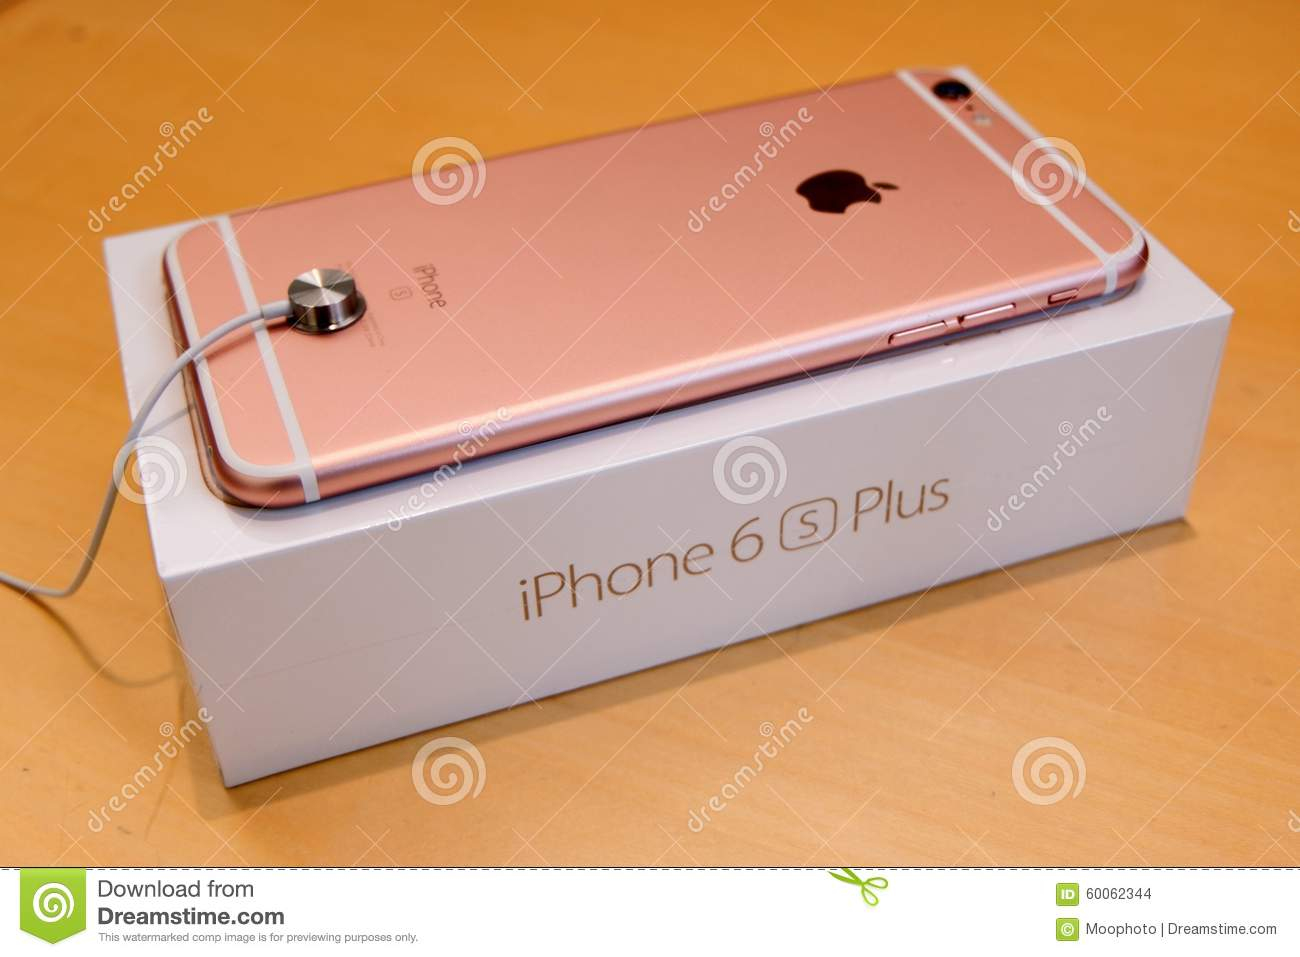 Globe iPhone 6 and iPhone 6 Plus Postpaid Plans